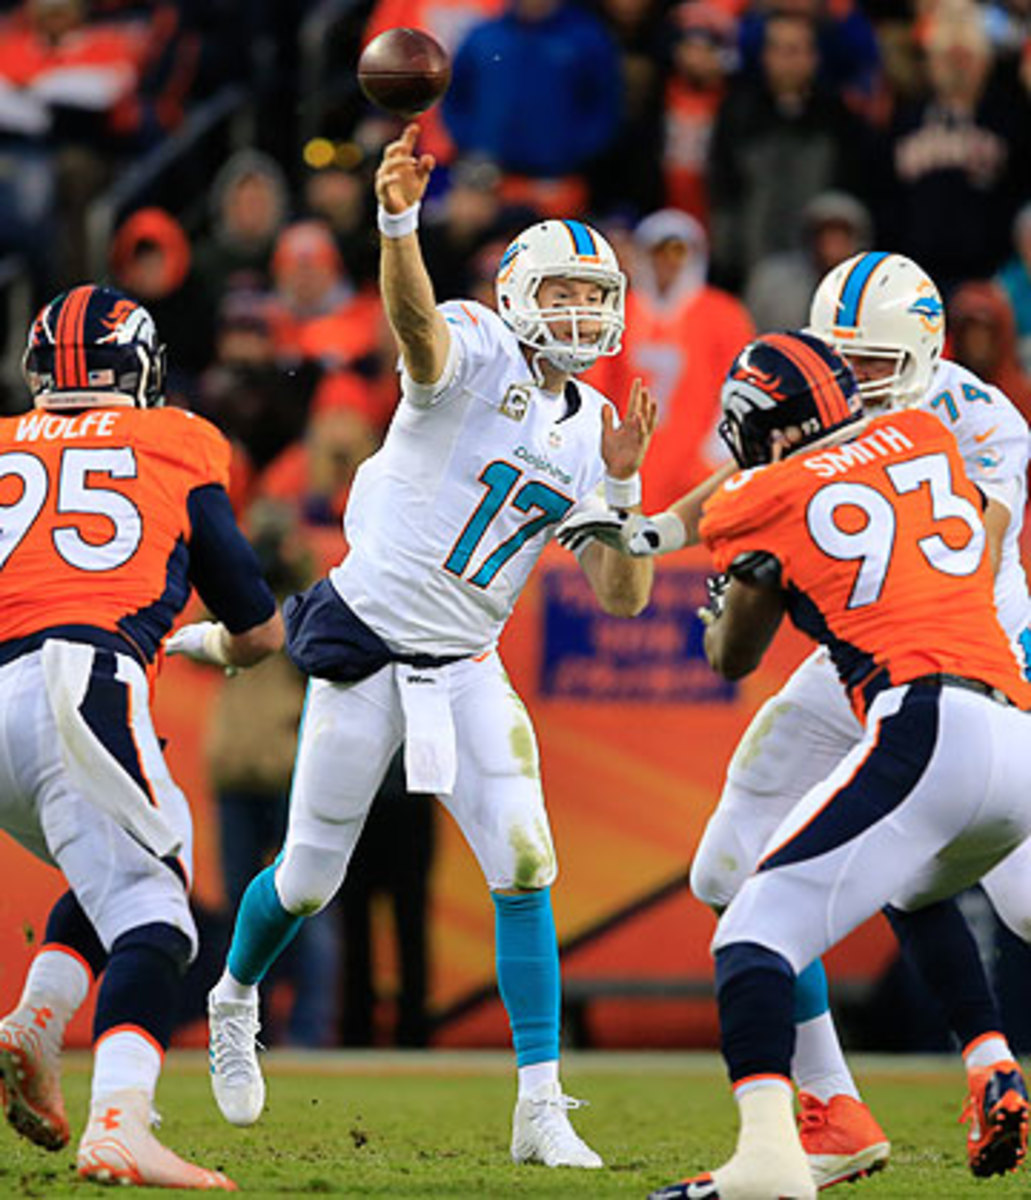 Ryan Tannehill stood tall against the Broncos, but the 6-5 Dolphins still face an uphill climb to make the postseason. (Doug Pensinger/Getty Images)